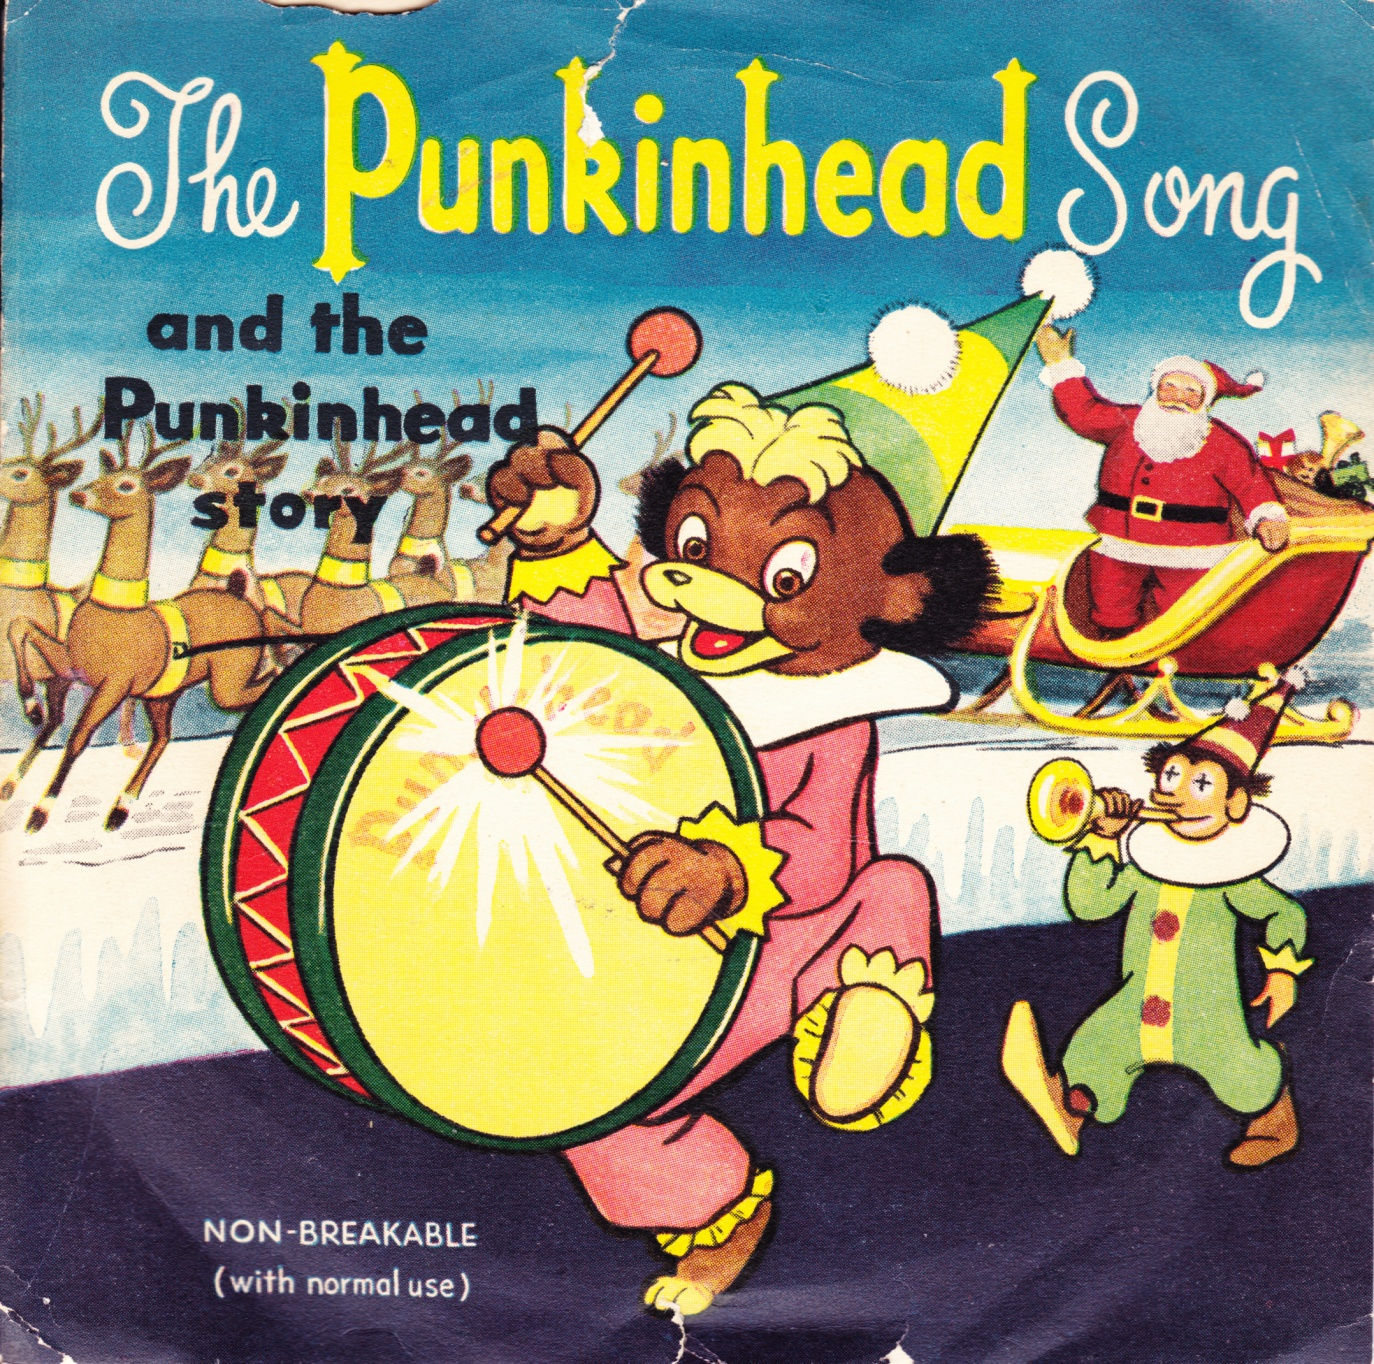 C:\Users\Robert\Documents\CARTOONING ILLUSTRATION ANIMATION\IMAGE CARTOON\IMAGE CARTOON P\PUNKINHEAD, The Punkinhead Song, 45 rpm, fc.jpg